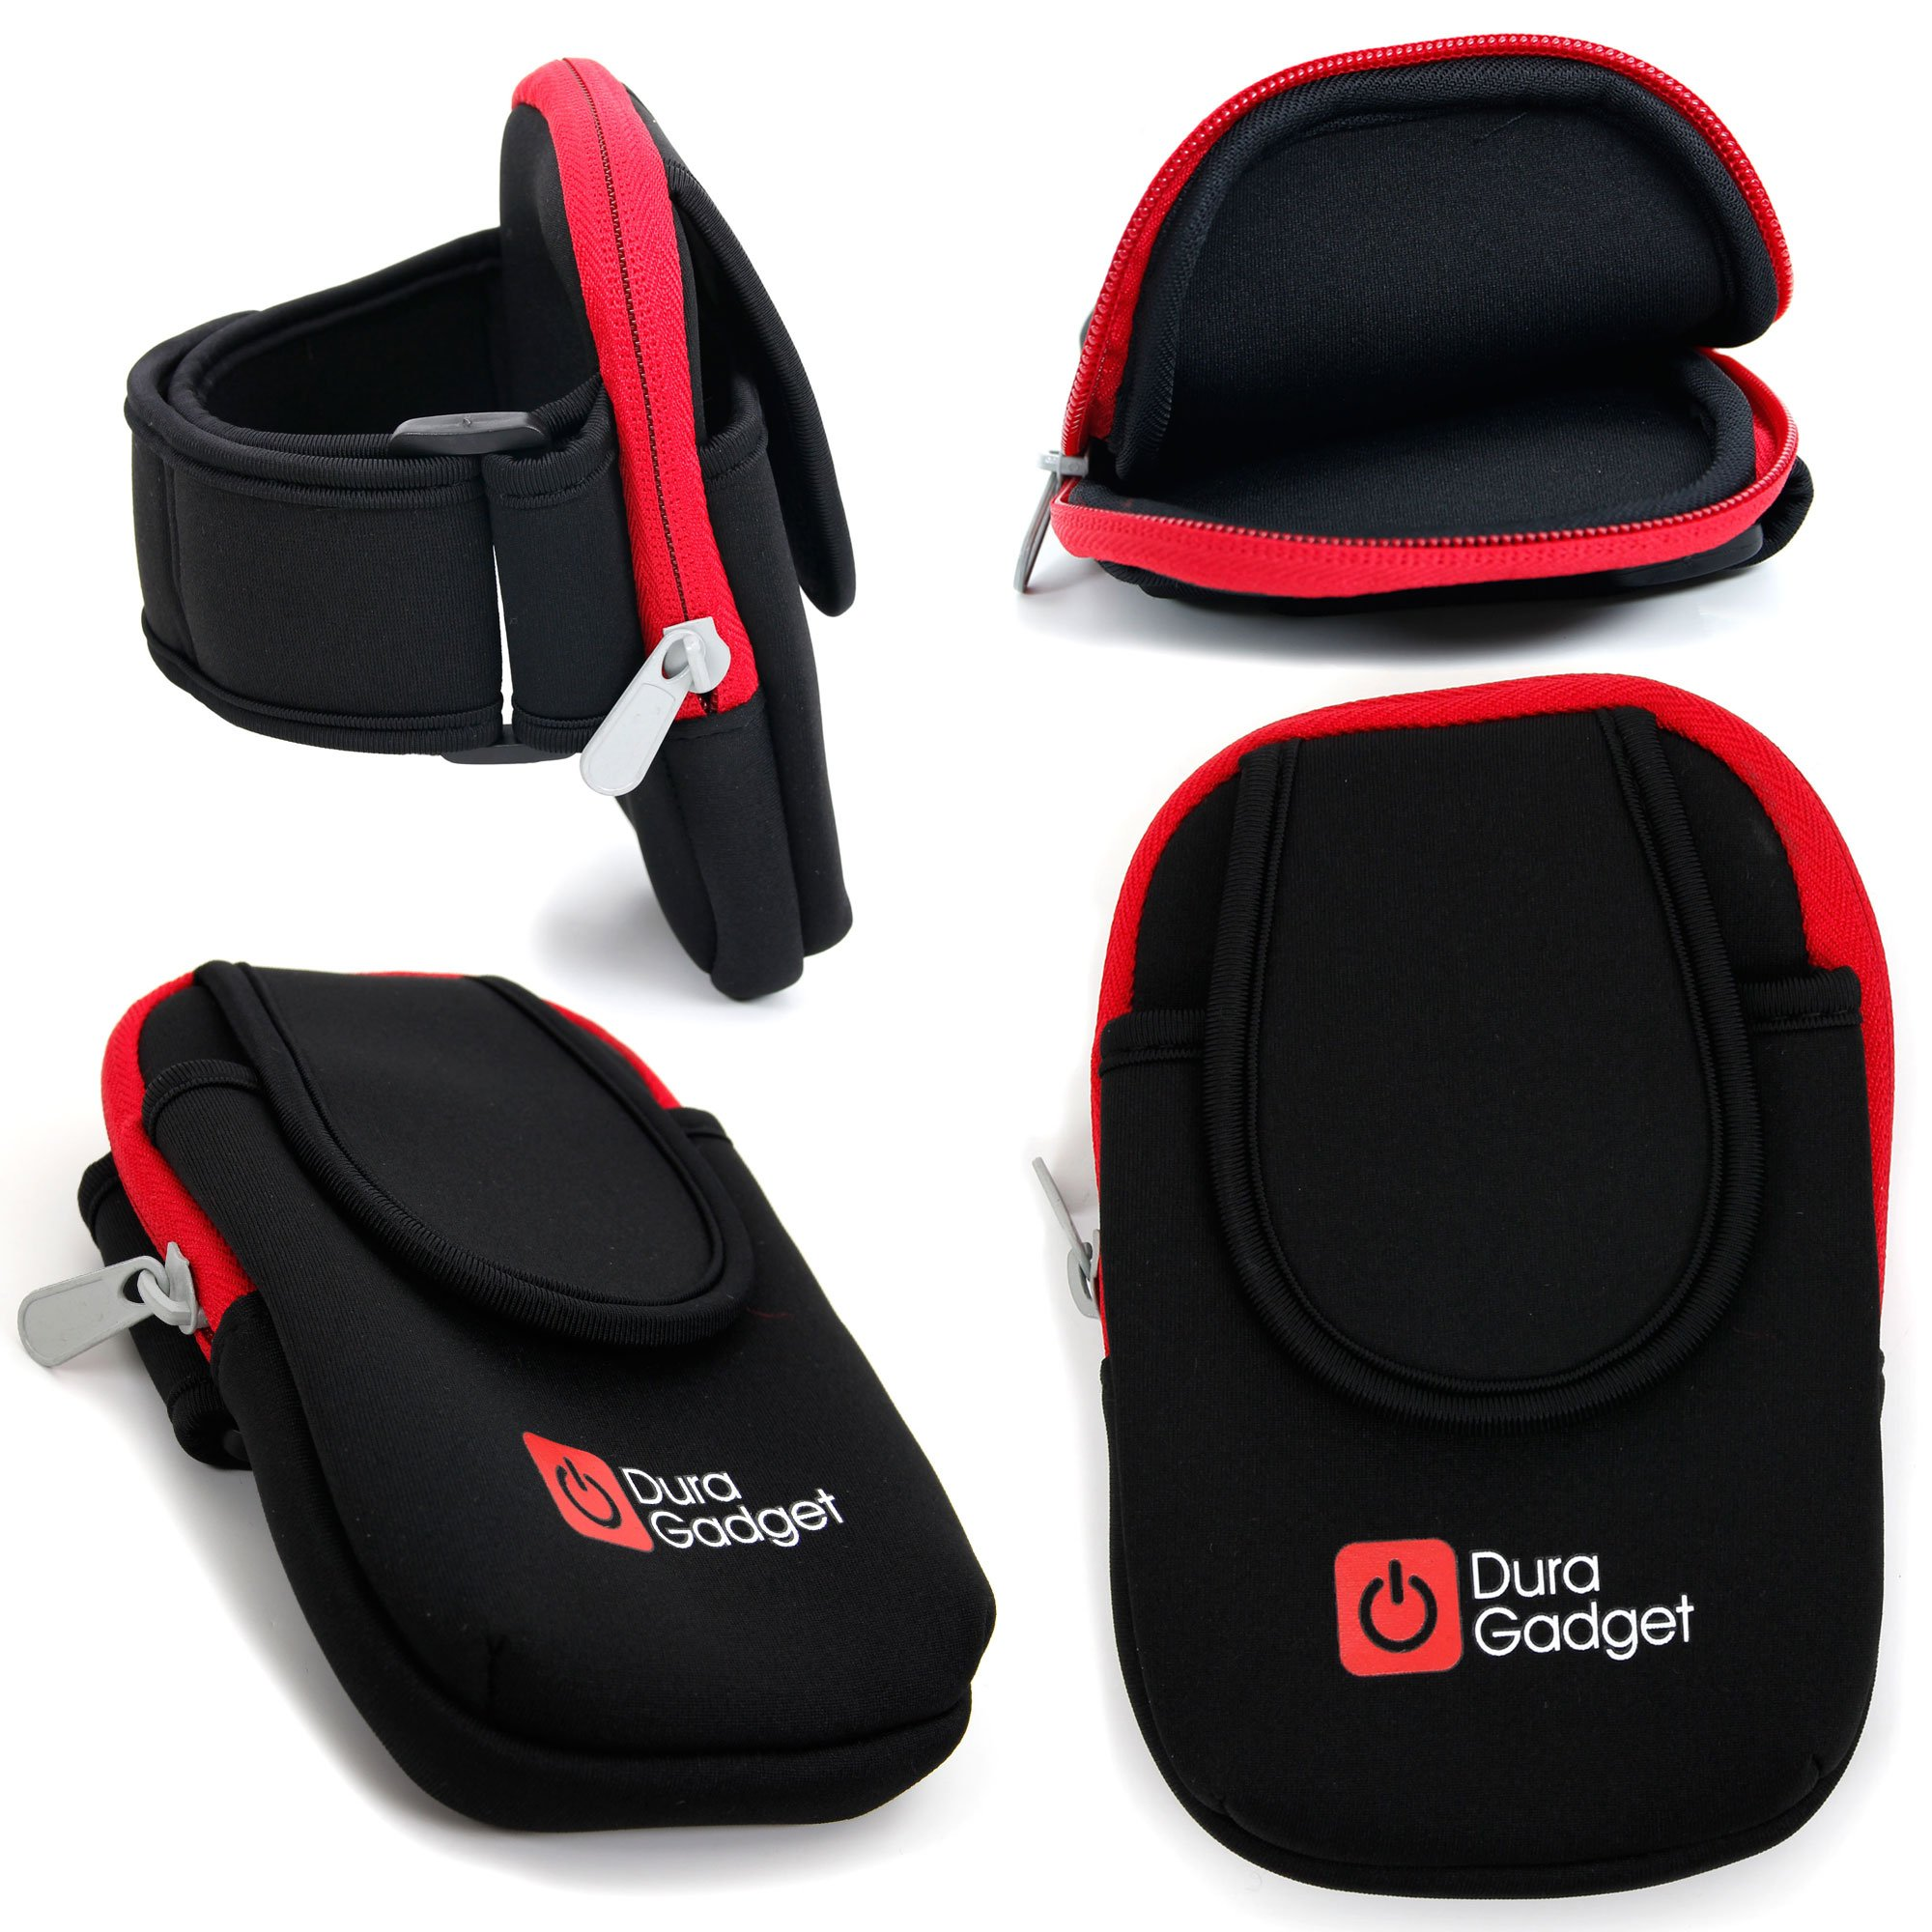 DURAGADGET Black & Red Neoprene Sports Armband for The HccToo Music Player 16GB